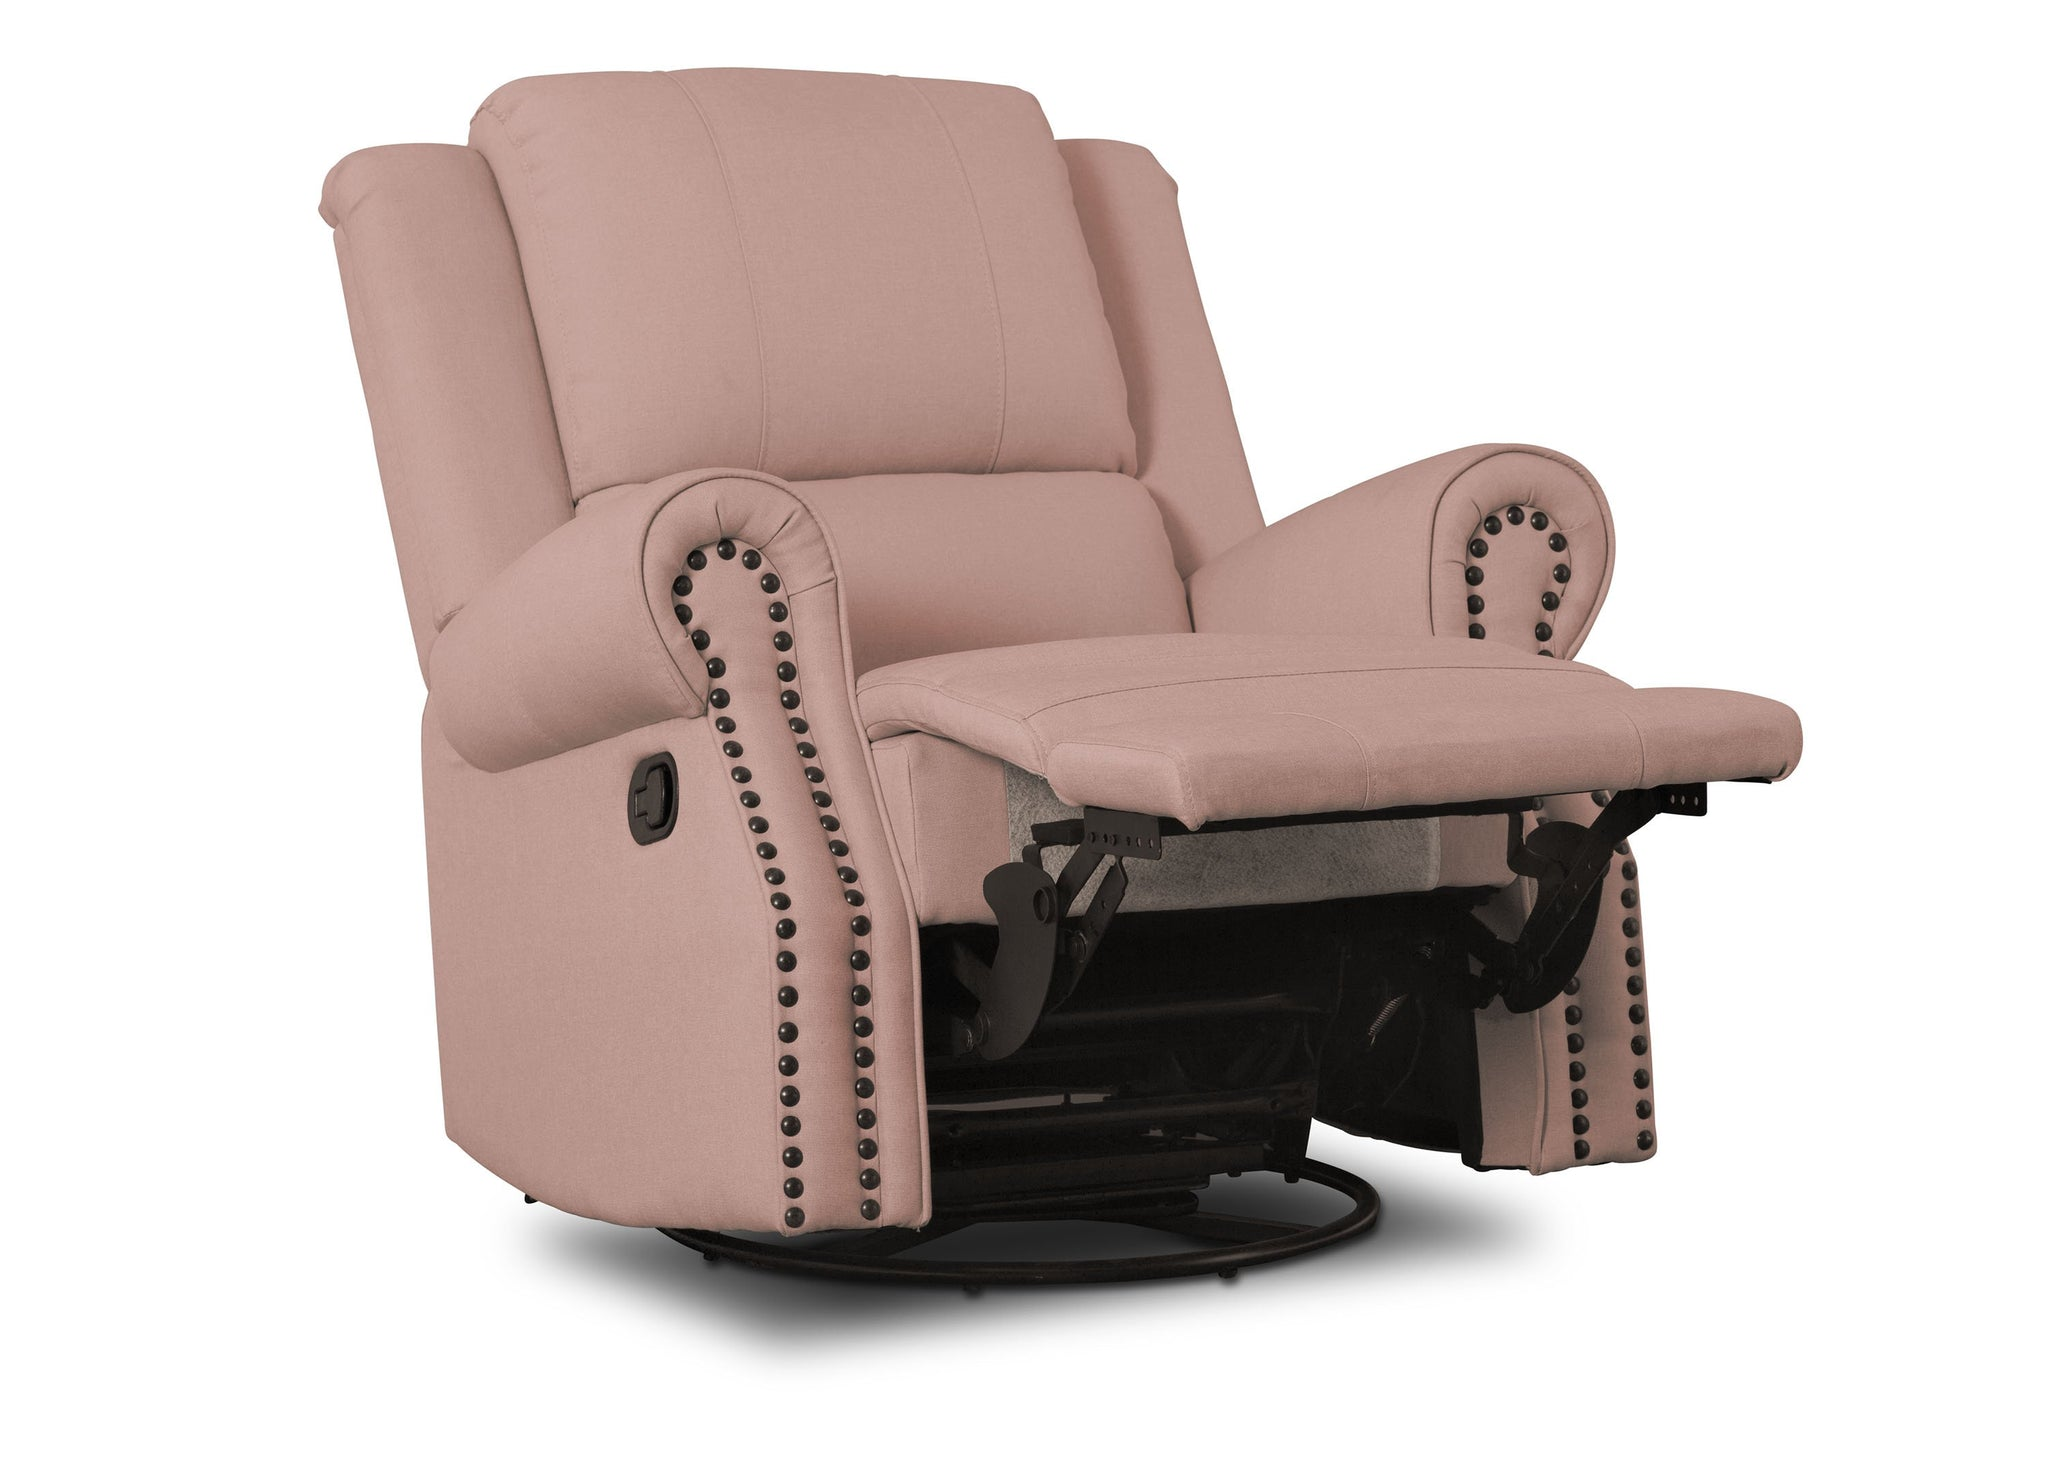 Delta Children Blush (636) Dexter Nursery Recliner Swivel Glider Chair (W2524310C), Reclined, a4a